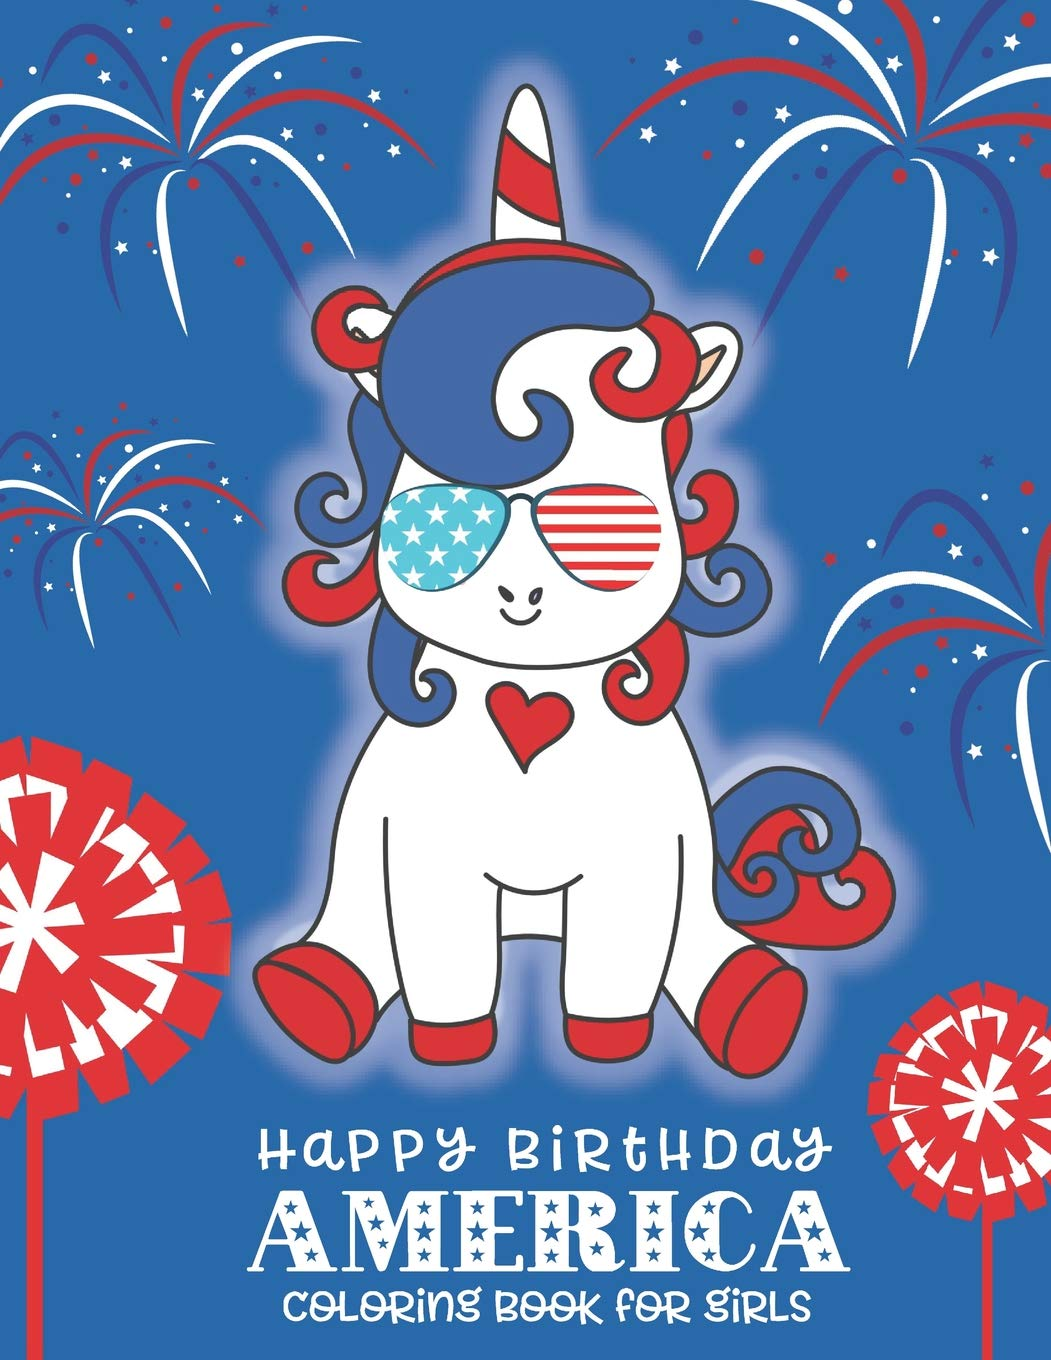 Happy Birthday America Coloring Book For Girls A 4th Of July Coloring Book For Girls Patriotic Coloring Books For Kids Creative Books Phosphenes Pink Crayon Coloring 9781073595259 Amazon Com Books